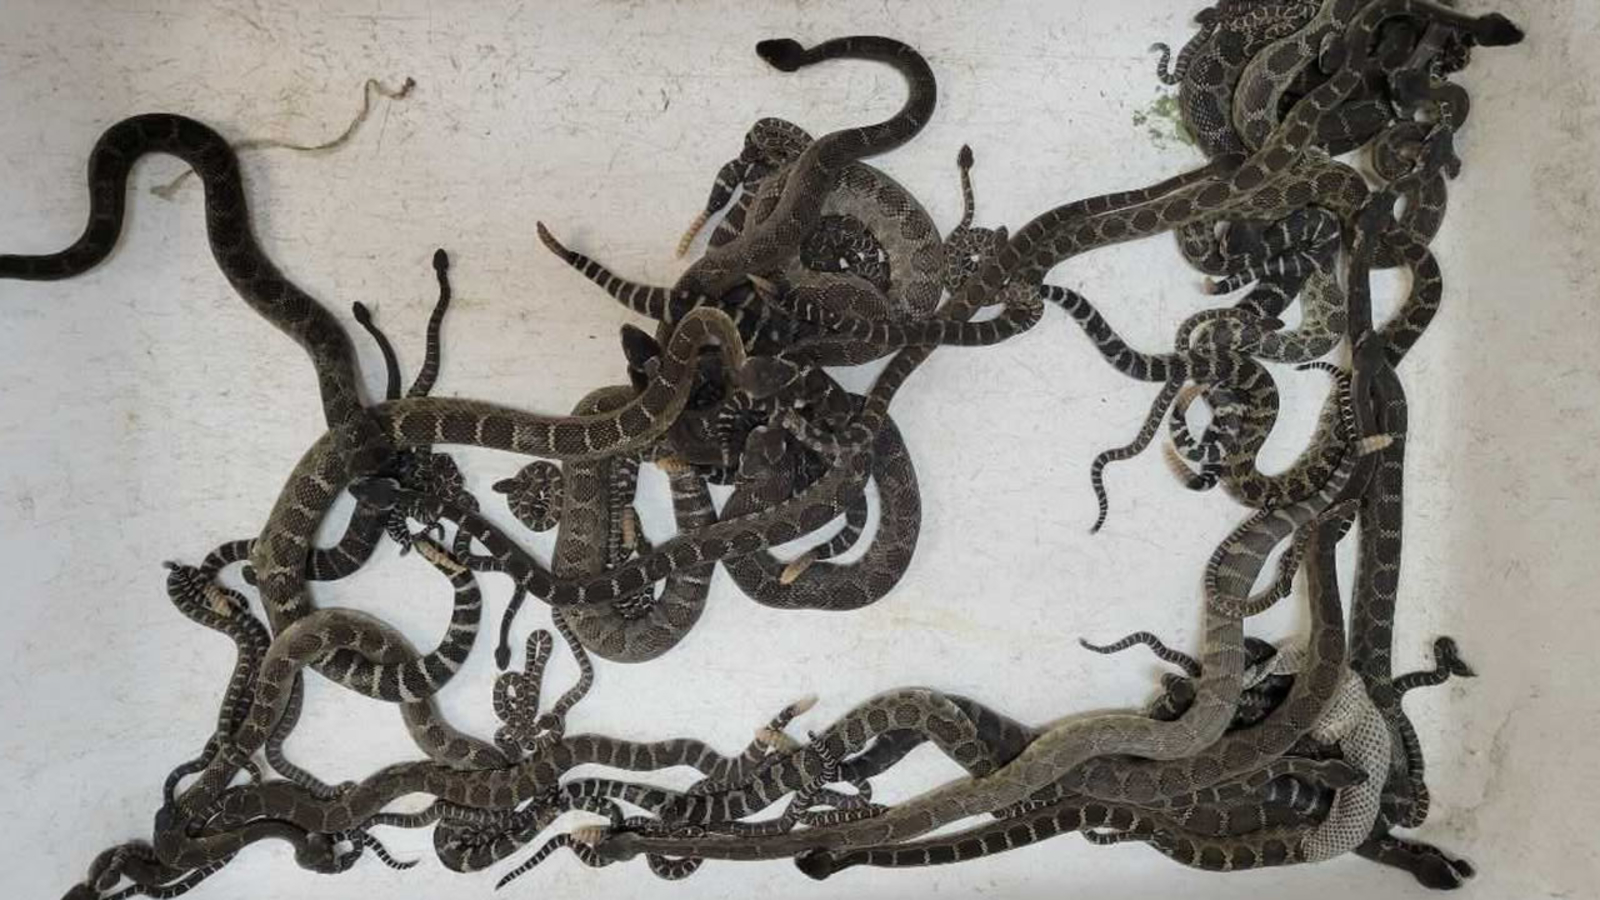 WATCH: A Woman Finds 92 Rattlesnakes Under Her House